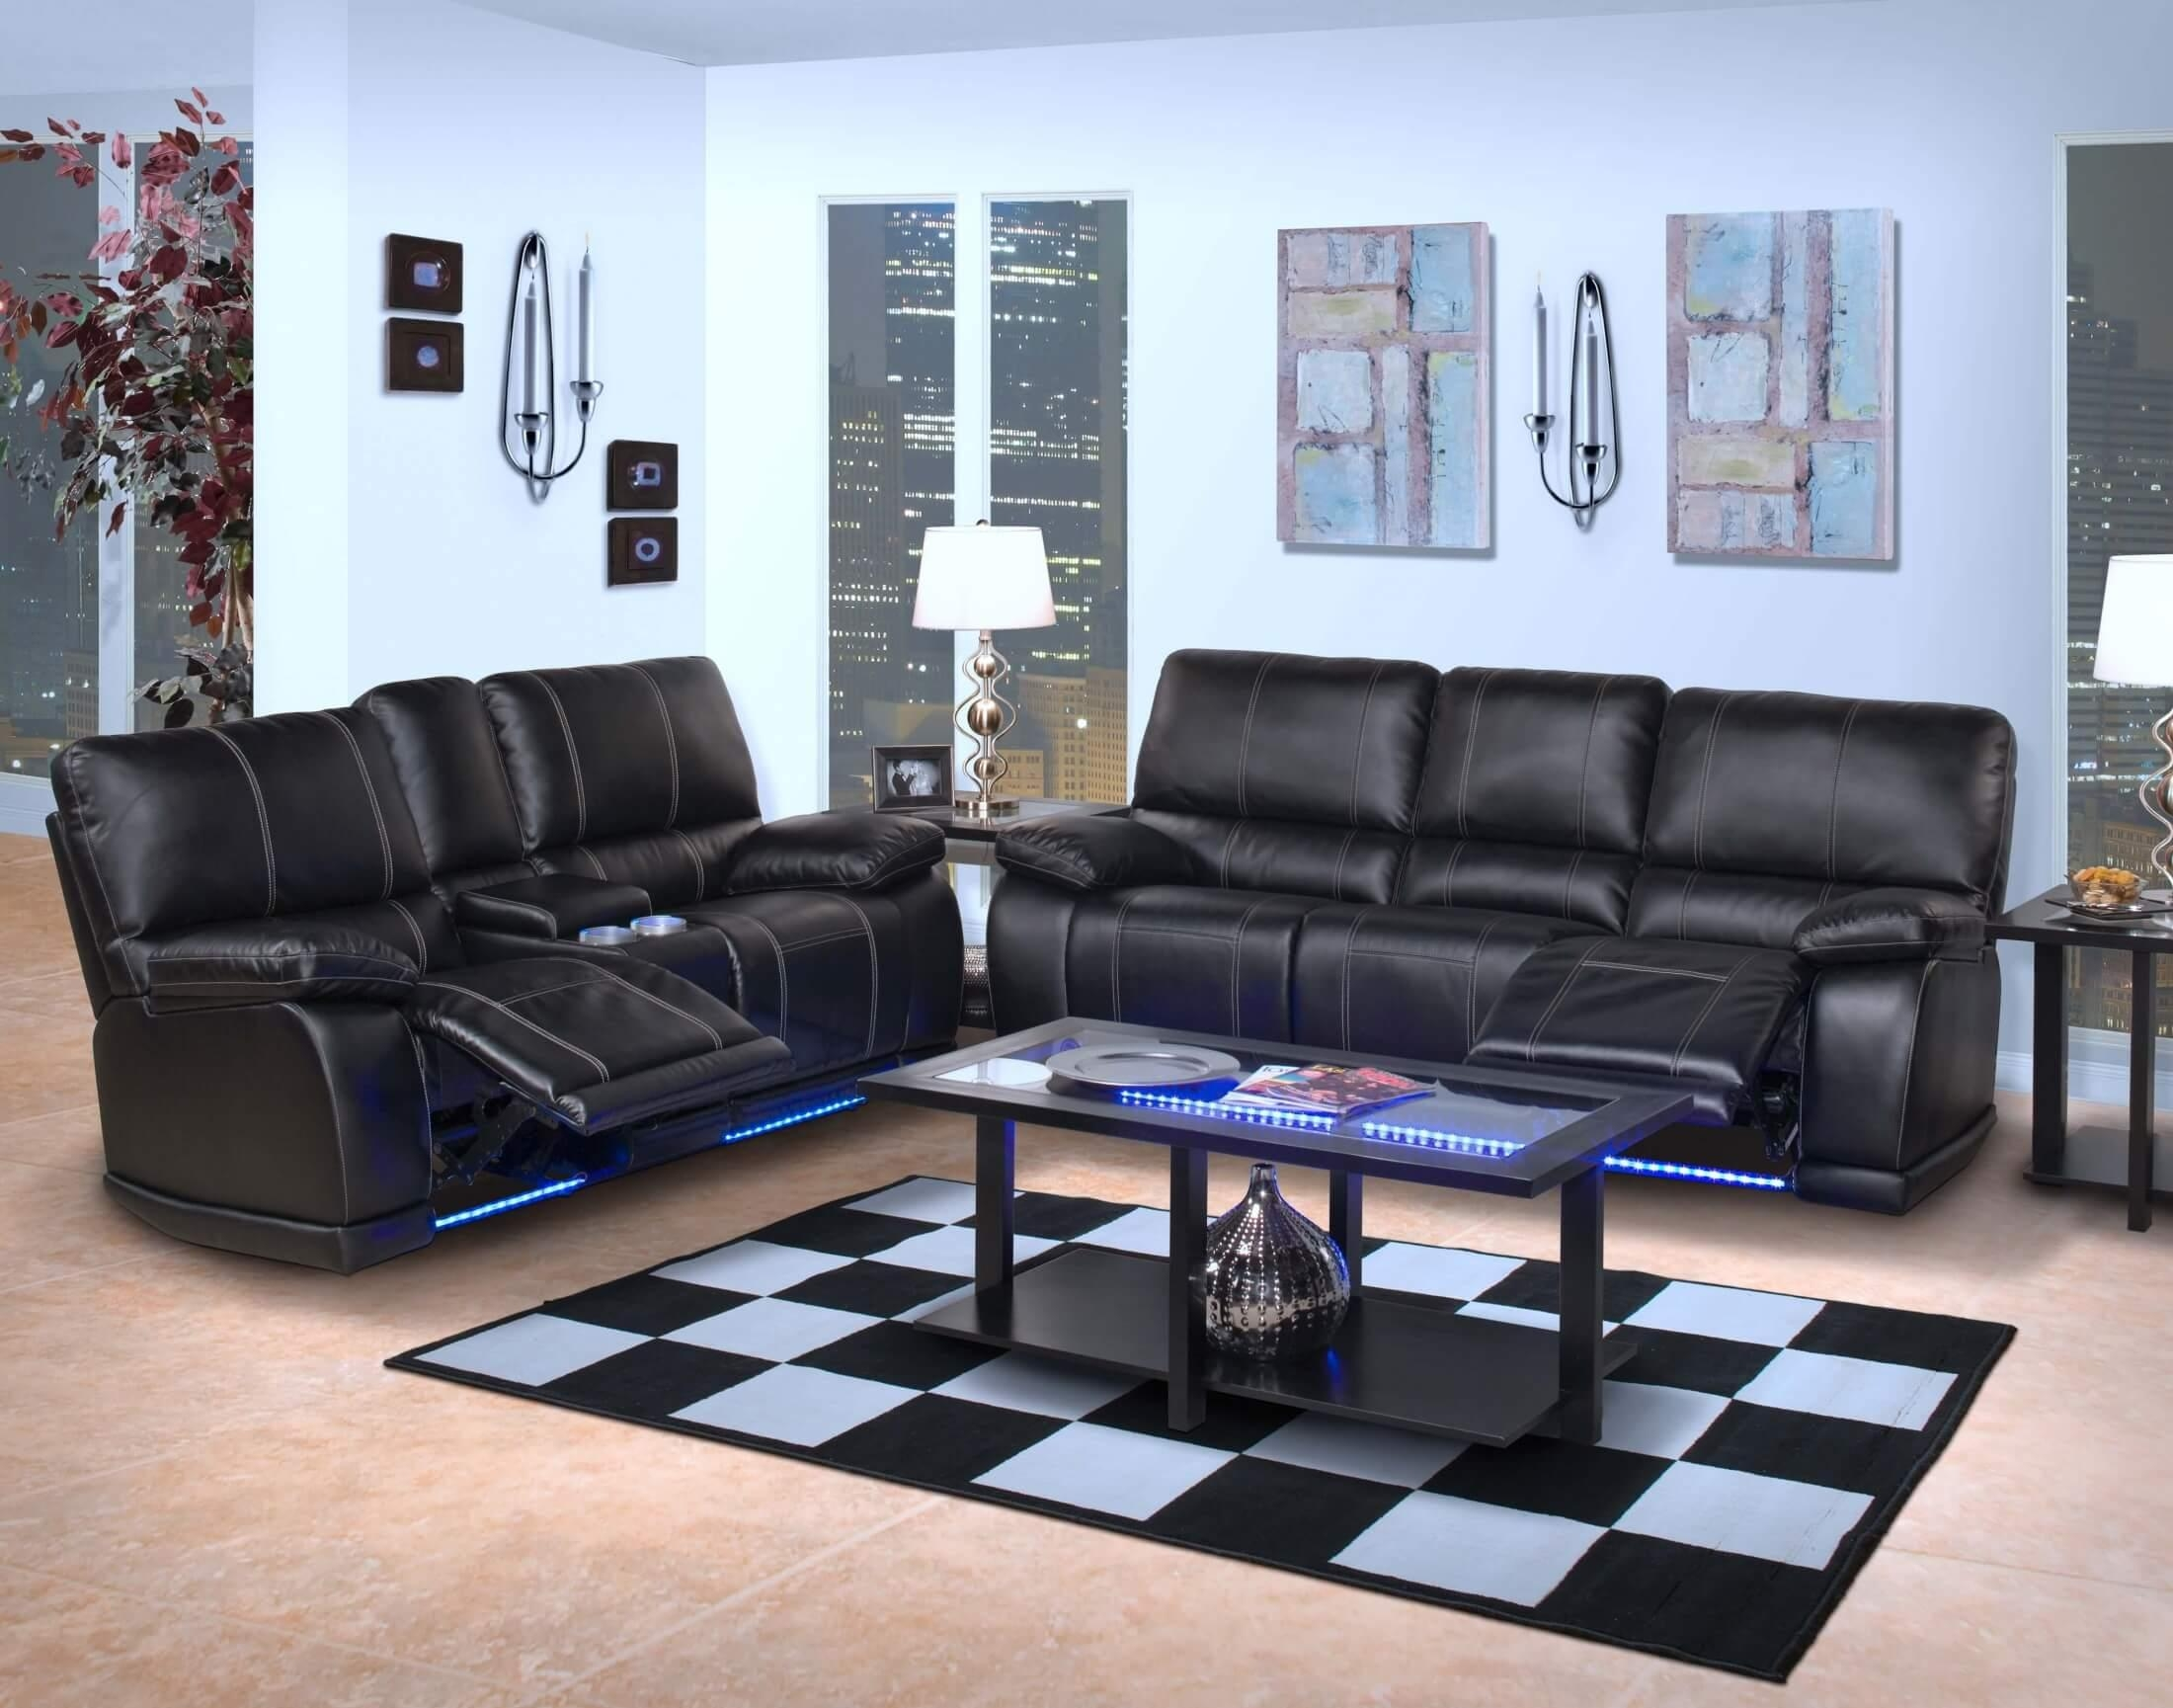 Electra Power Reclining Sectional With Led Lights Intended For Sofas With Lights (Image 10 of 21)